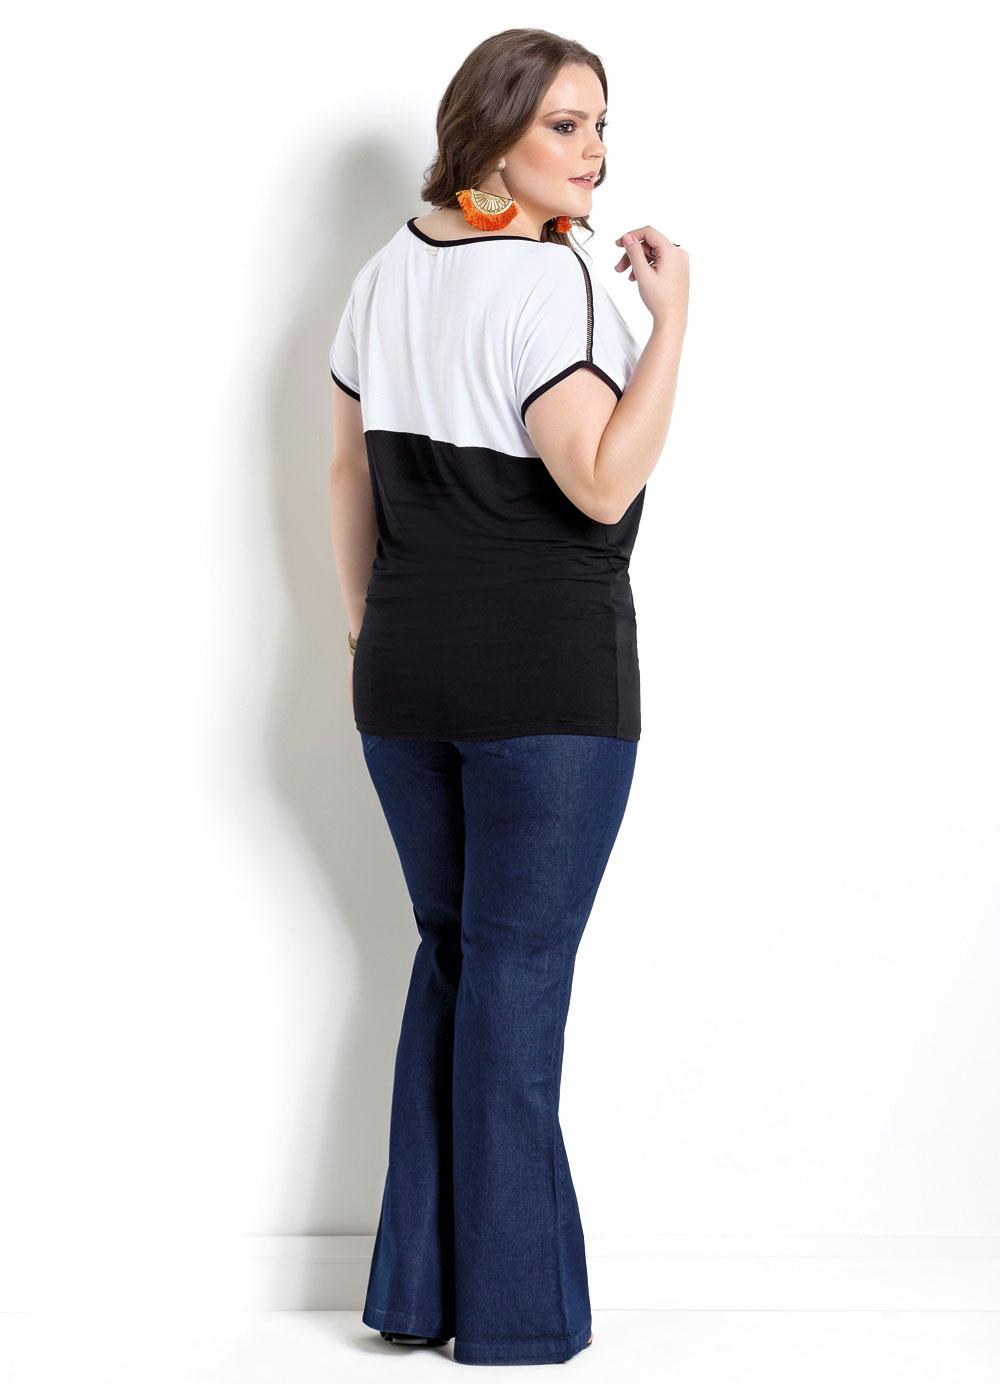 fee327c6f3 BLUSA BICOLOR PRETA E BRANCA QUINTESS PLUS SIZE - Quintess